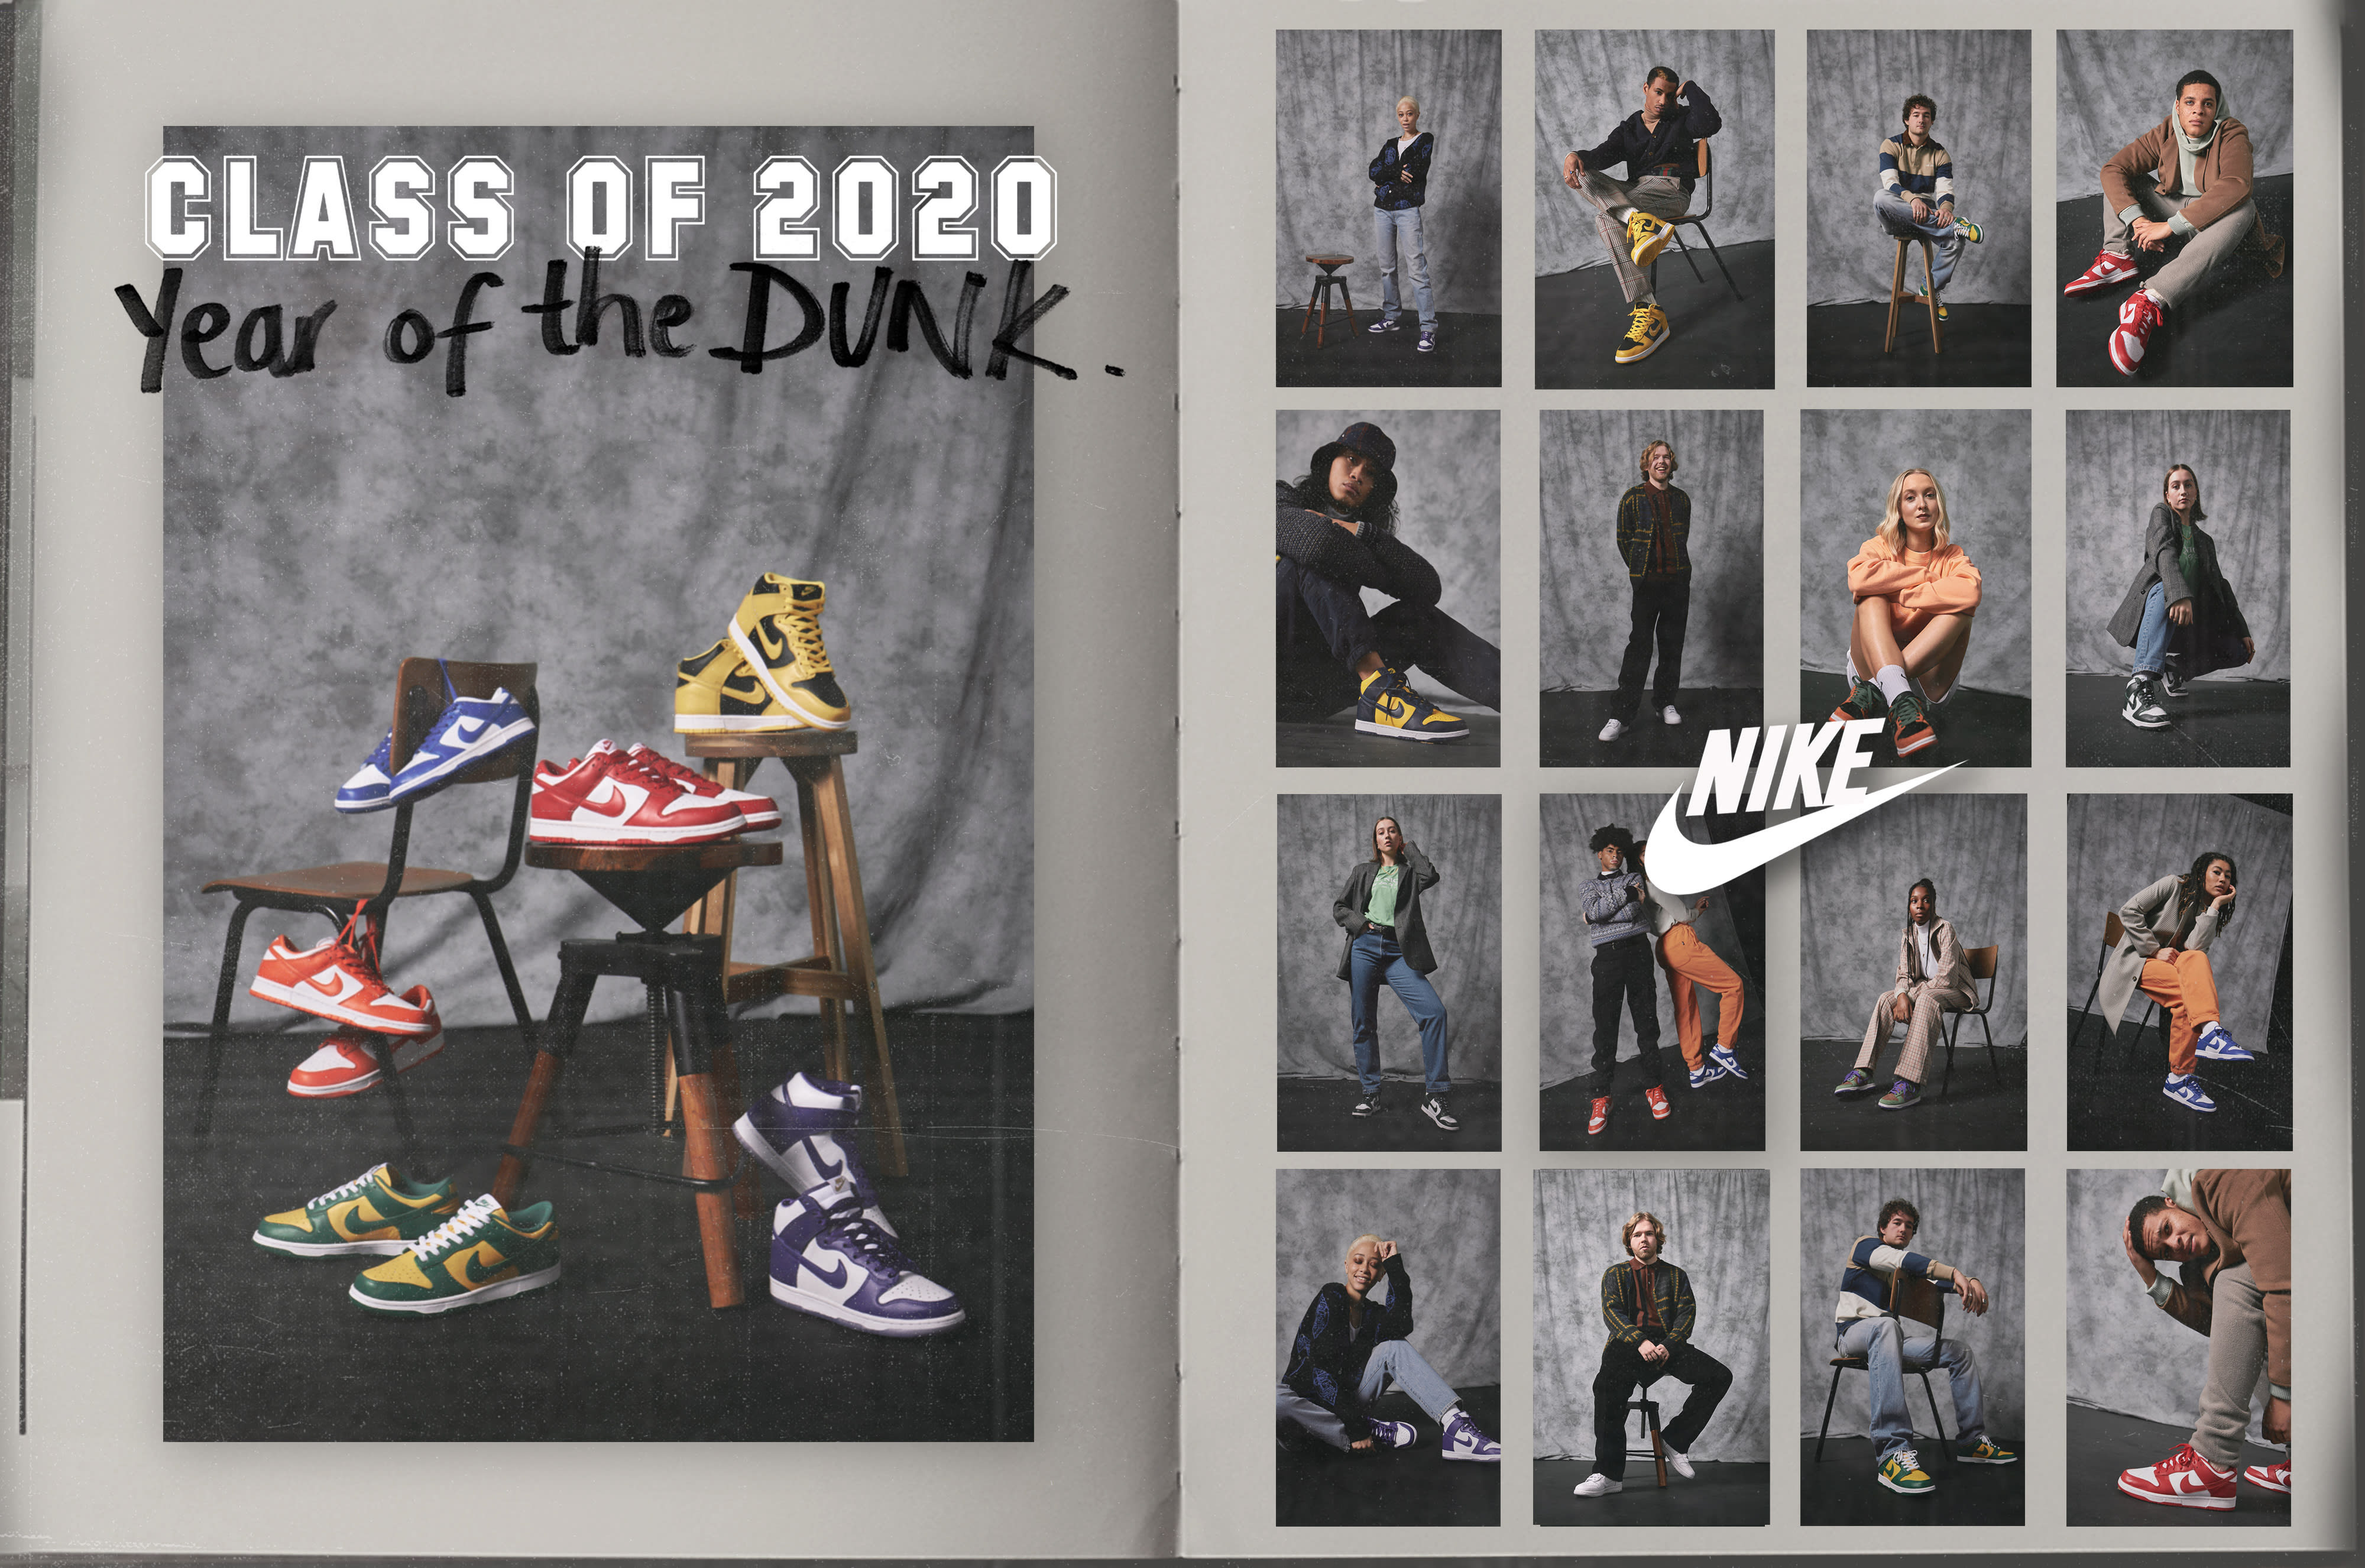 Class of 2020: Year of the Dunk